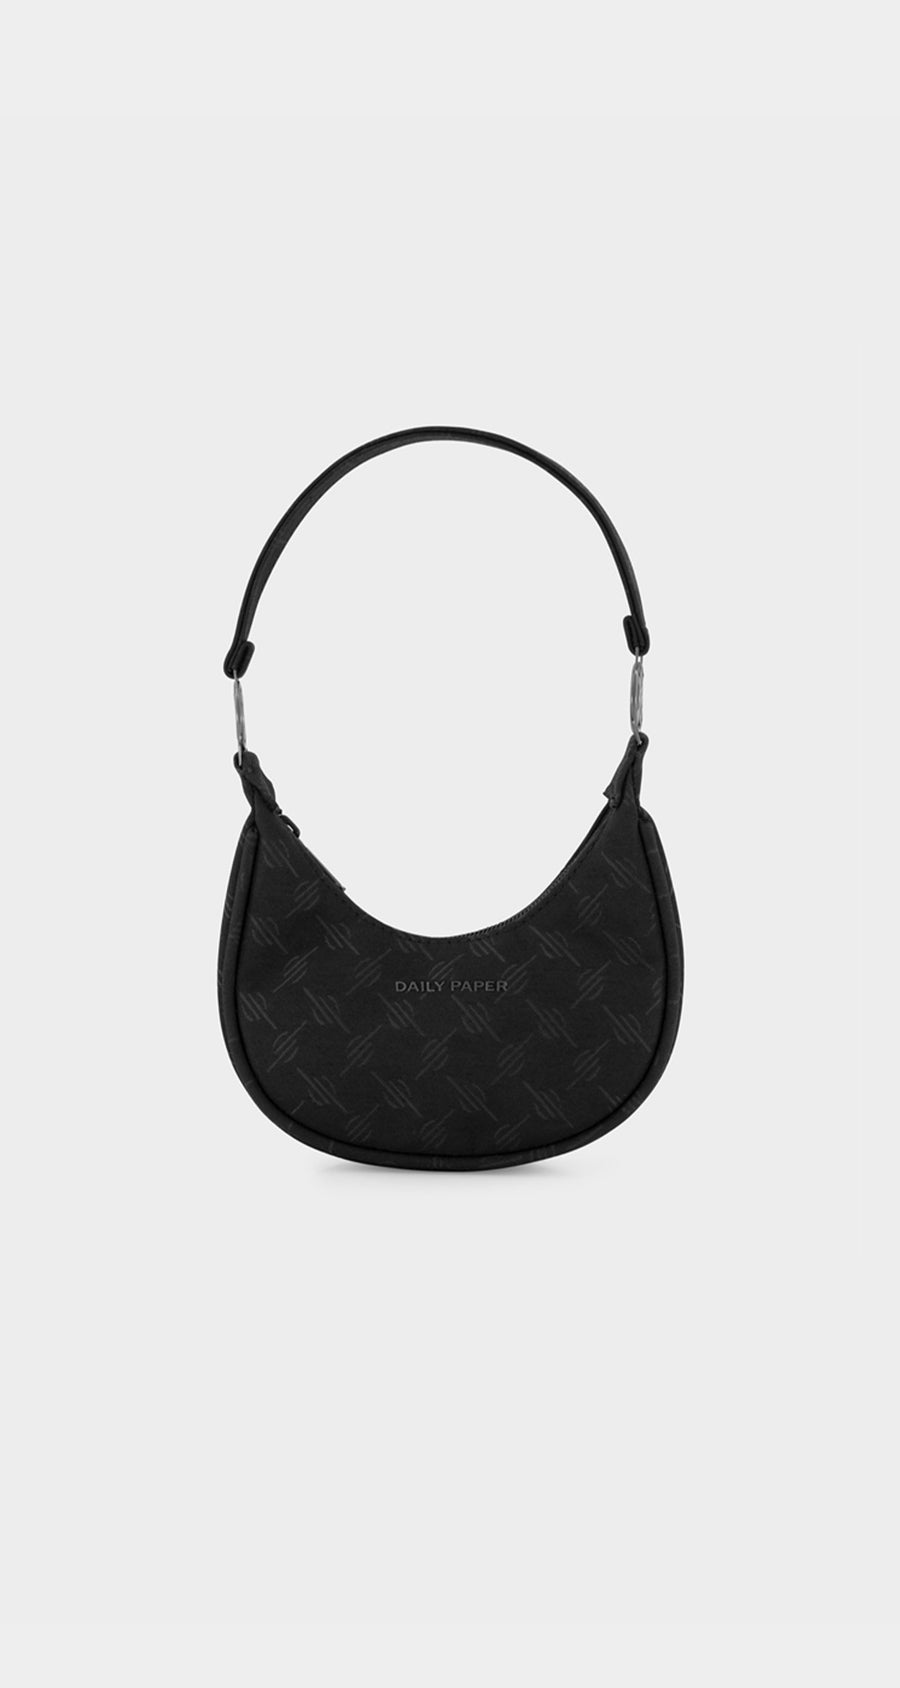 Daily Paper - Black Monogram Hoci Bag - Front